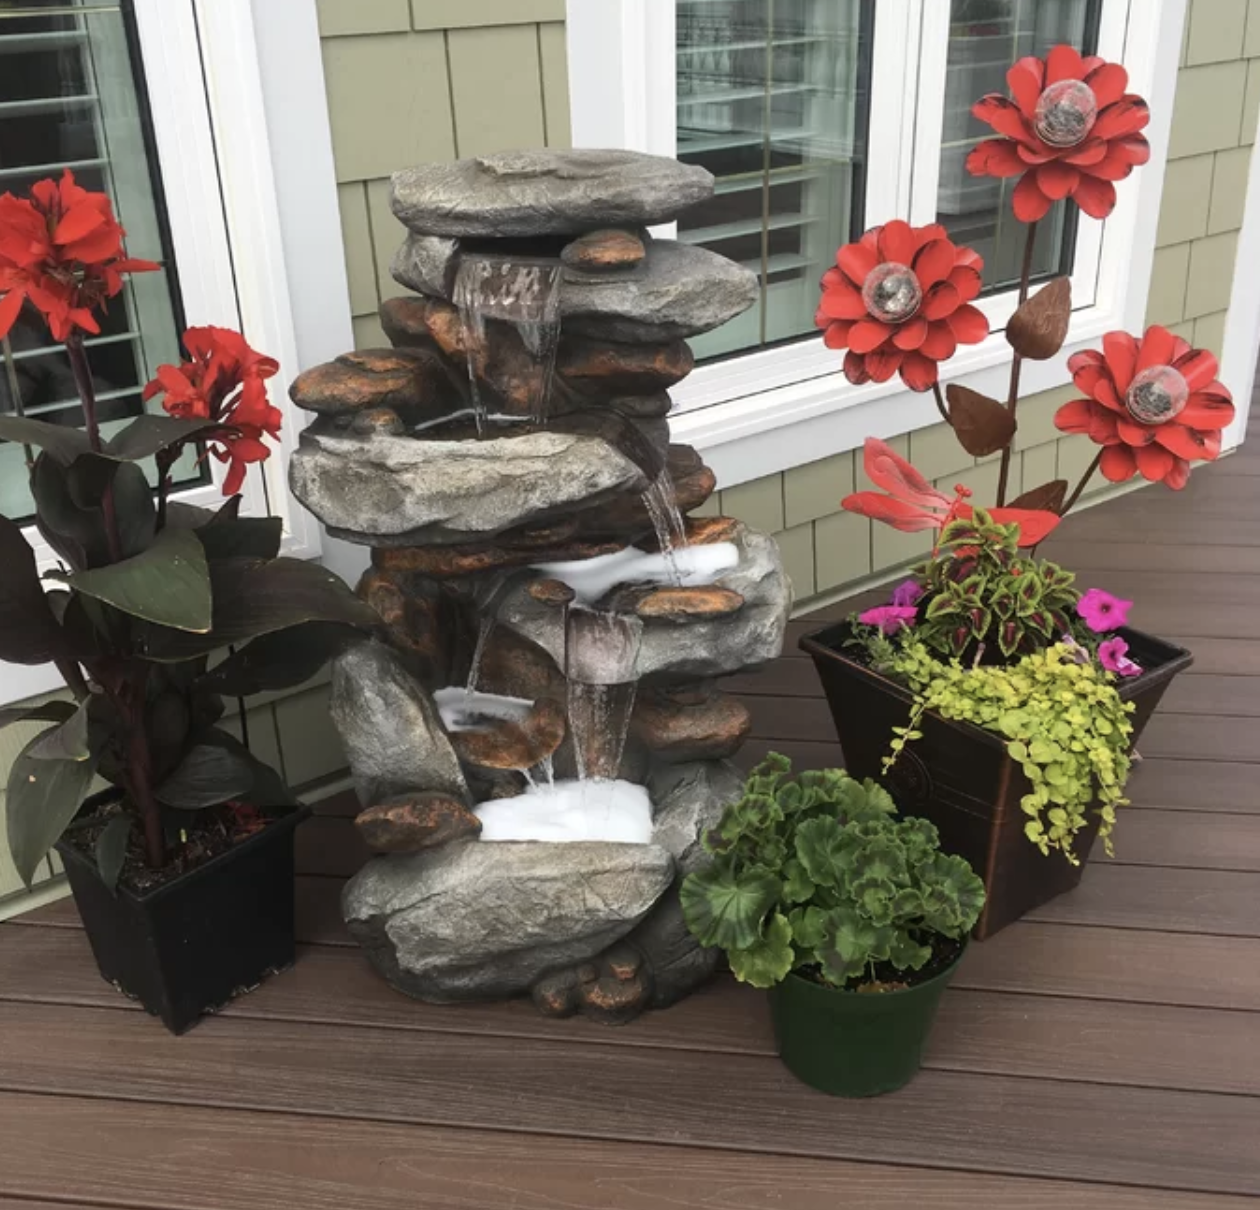 Reviewer's photo of the fountain on their deck